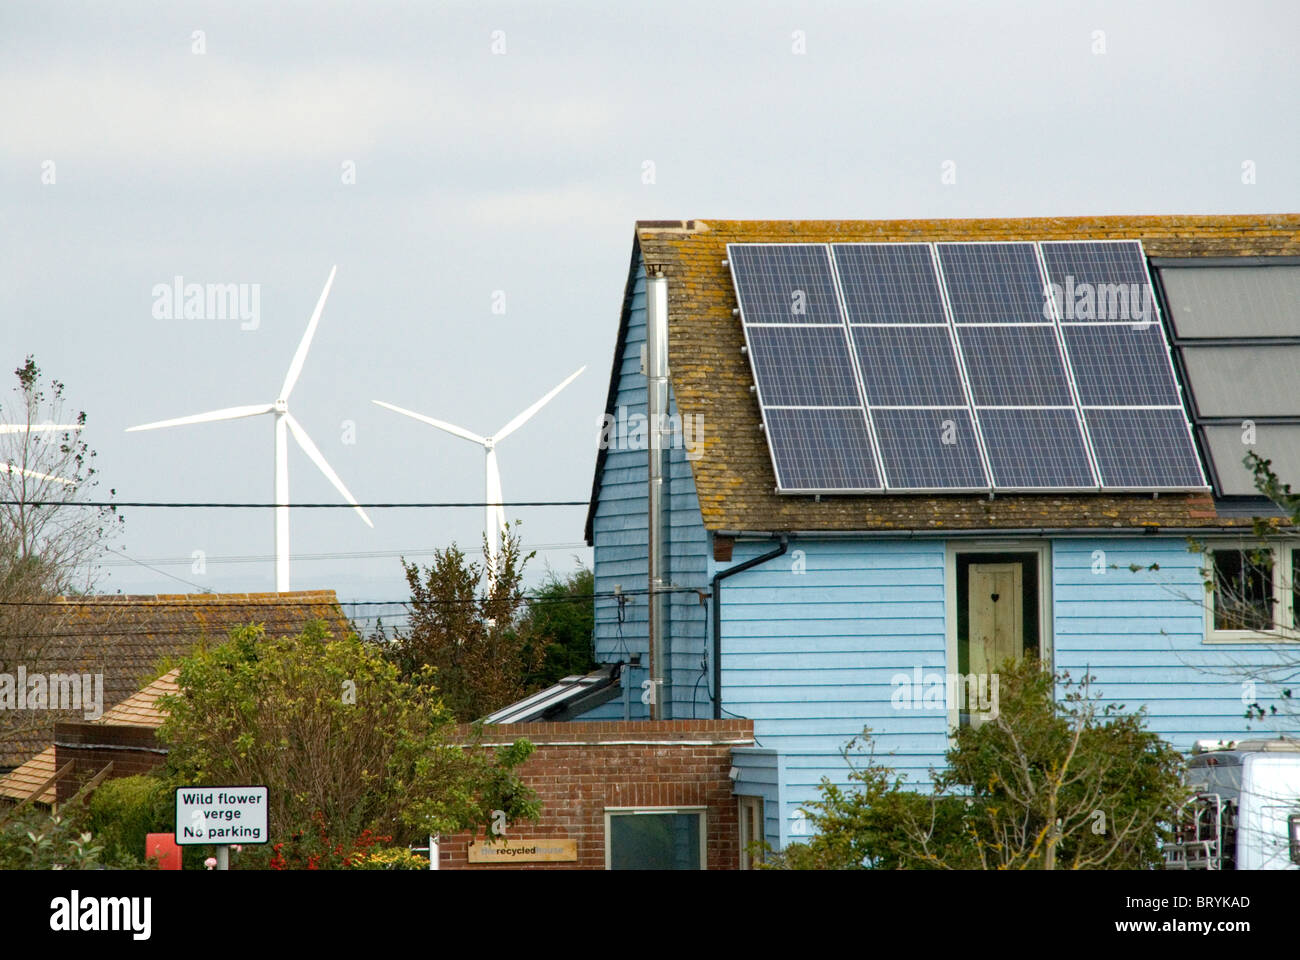 Wind turbines behind a house with solar panels The Recycled House Camber Rye east Sussex - Stock Image